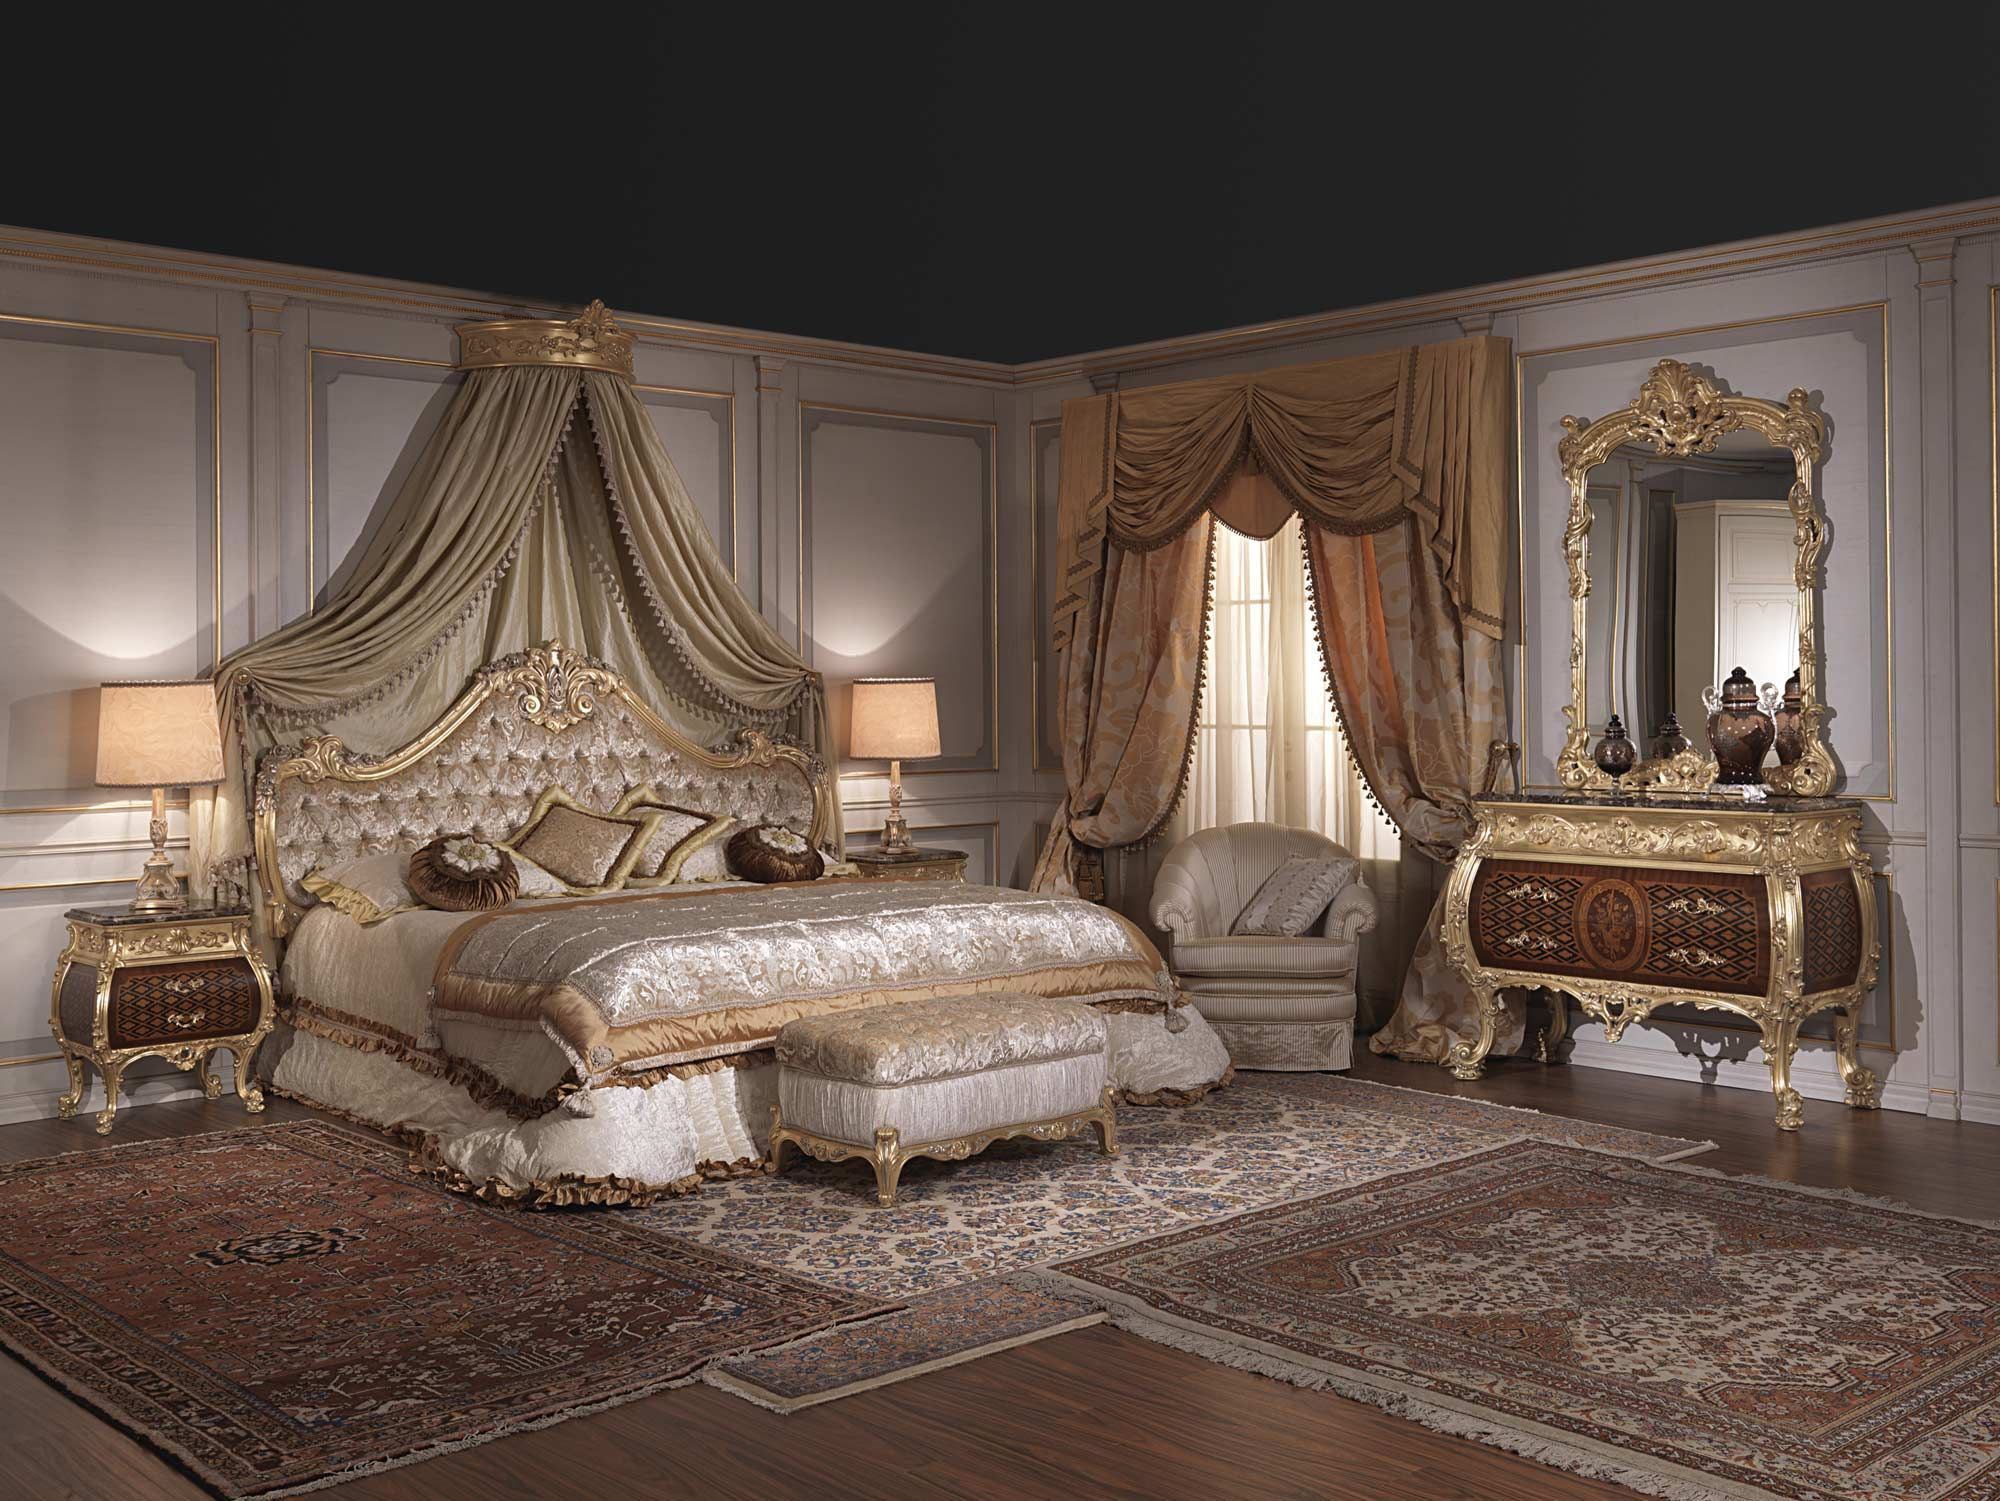 Furniture for luxury bedroom Emperador Gold, art. 397931